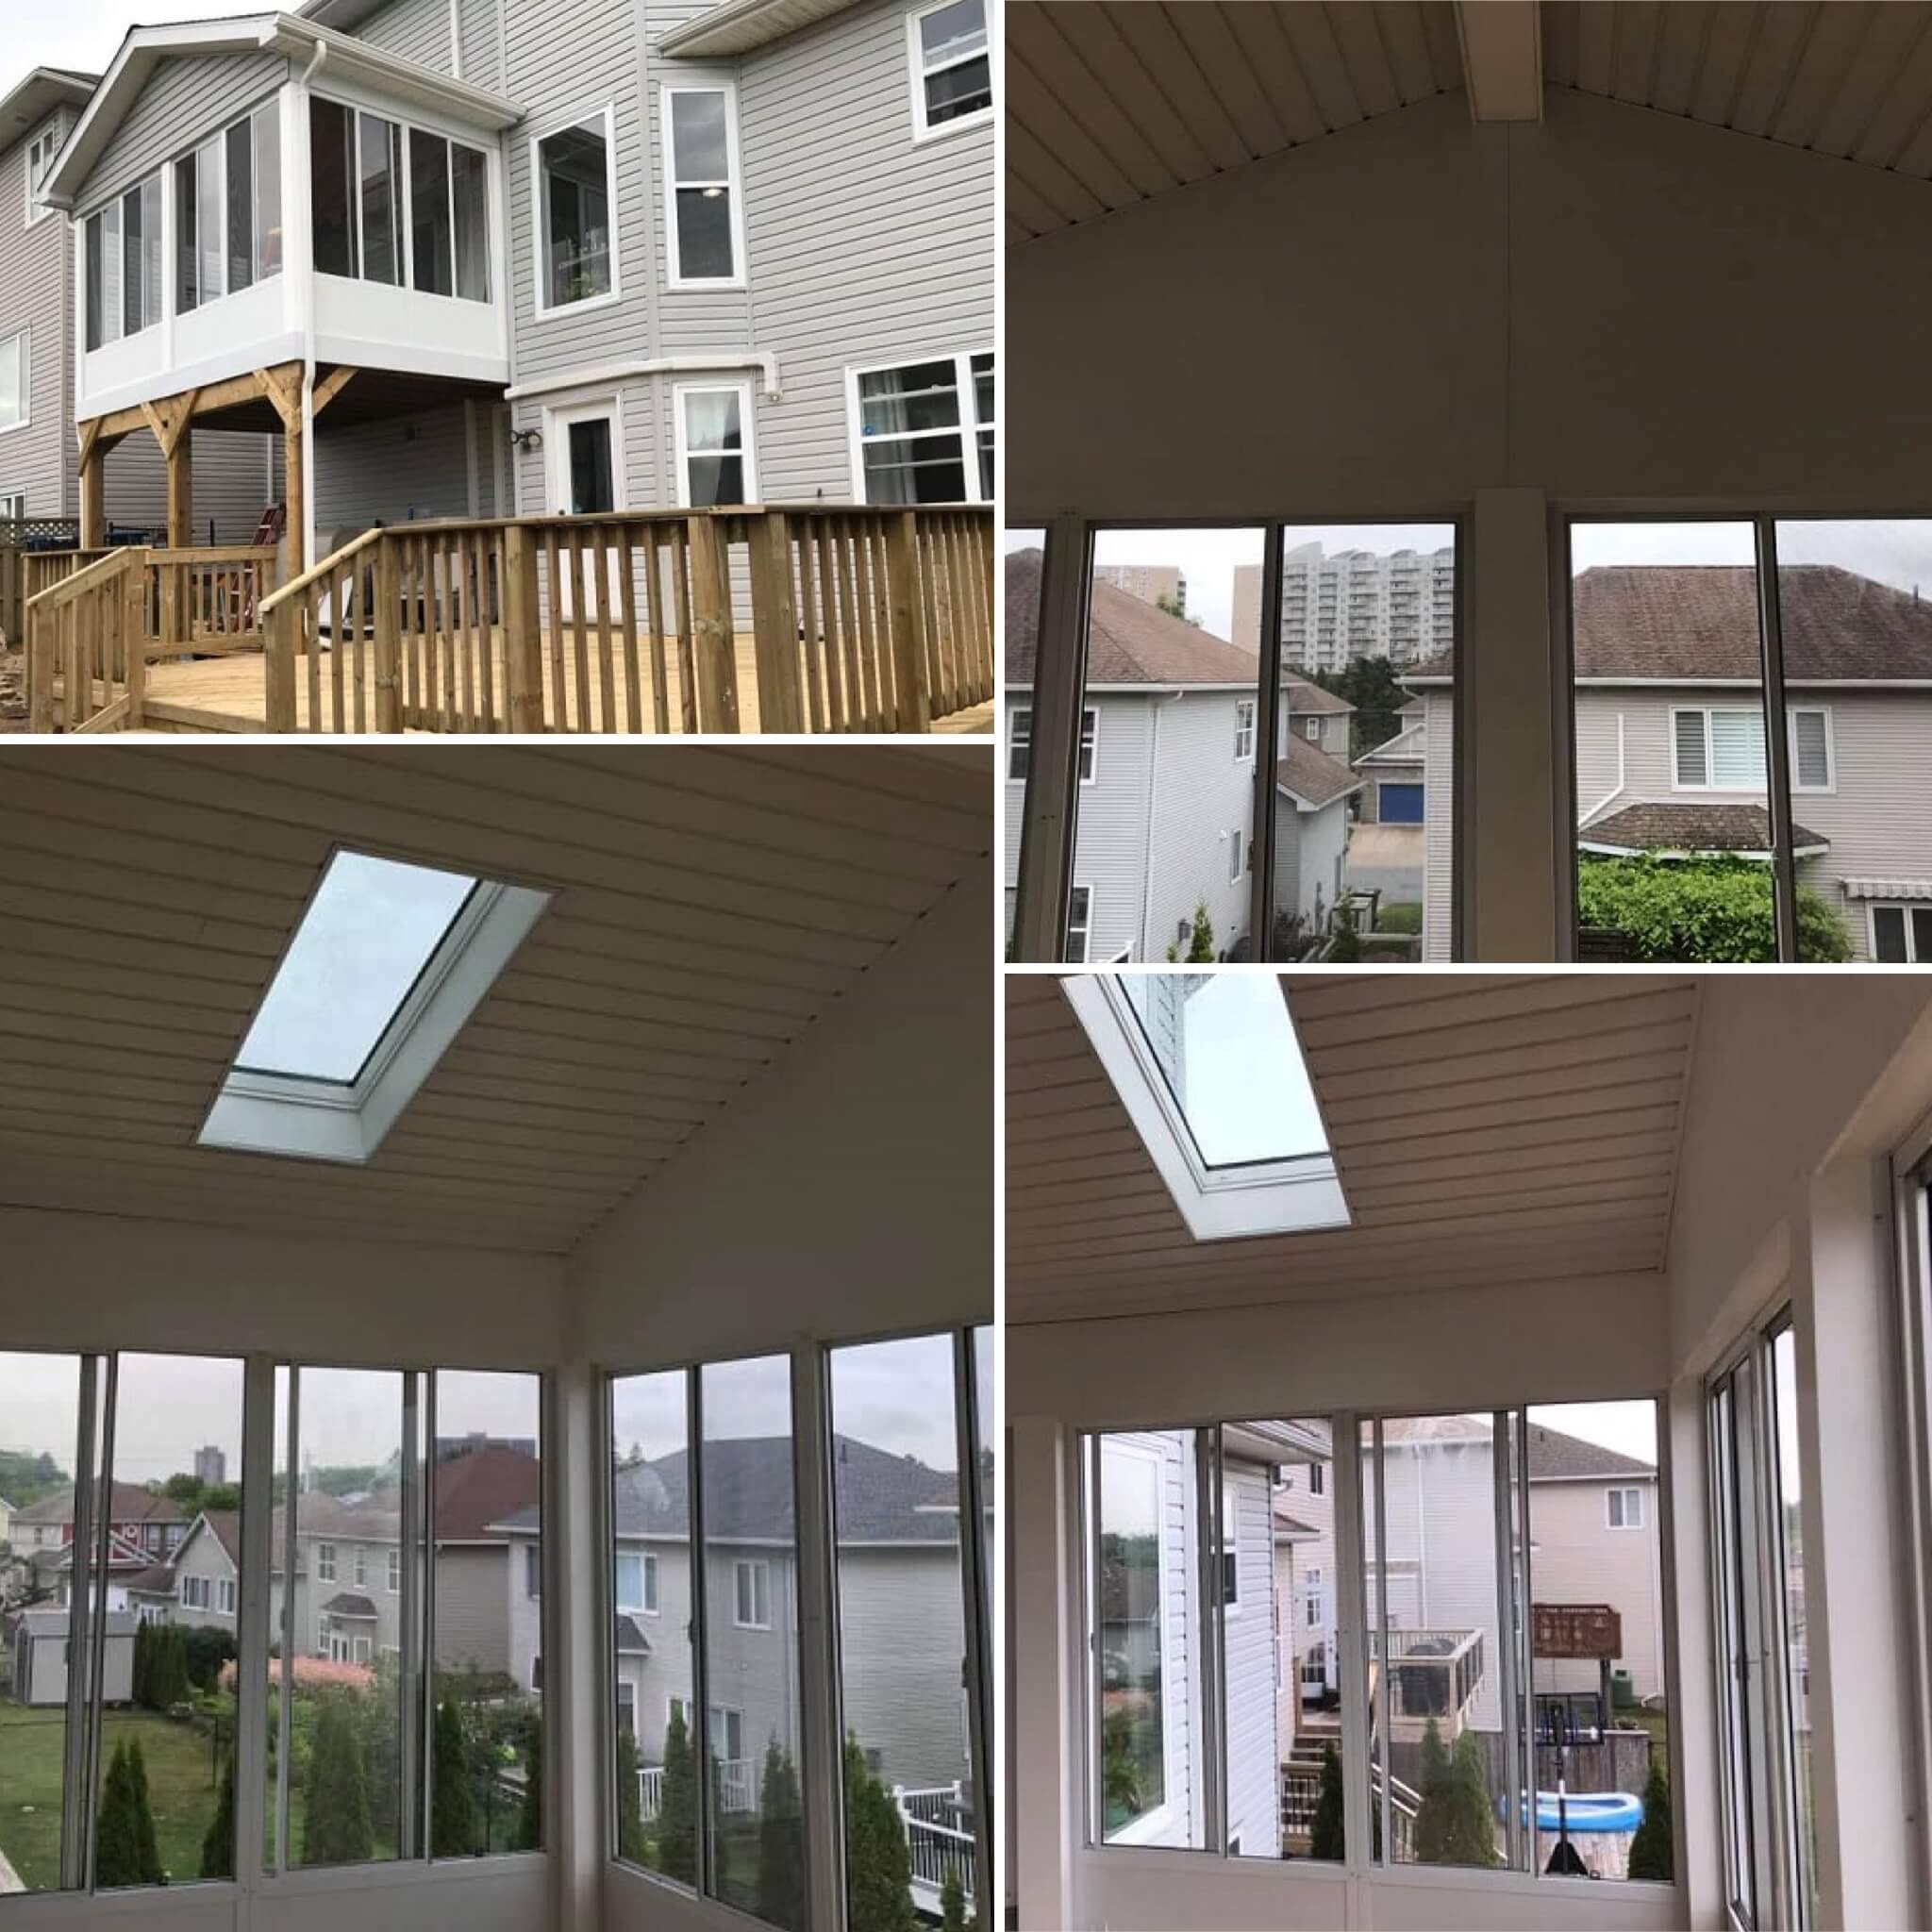 sunroom addition in Halifax, Nova Scotia